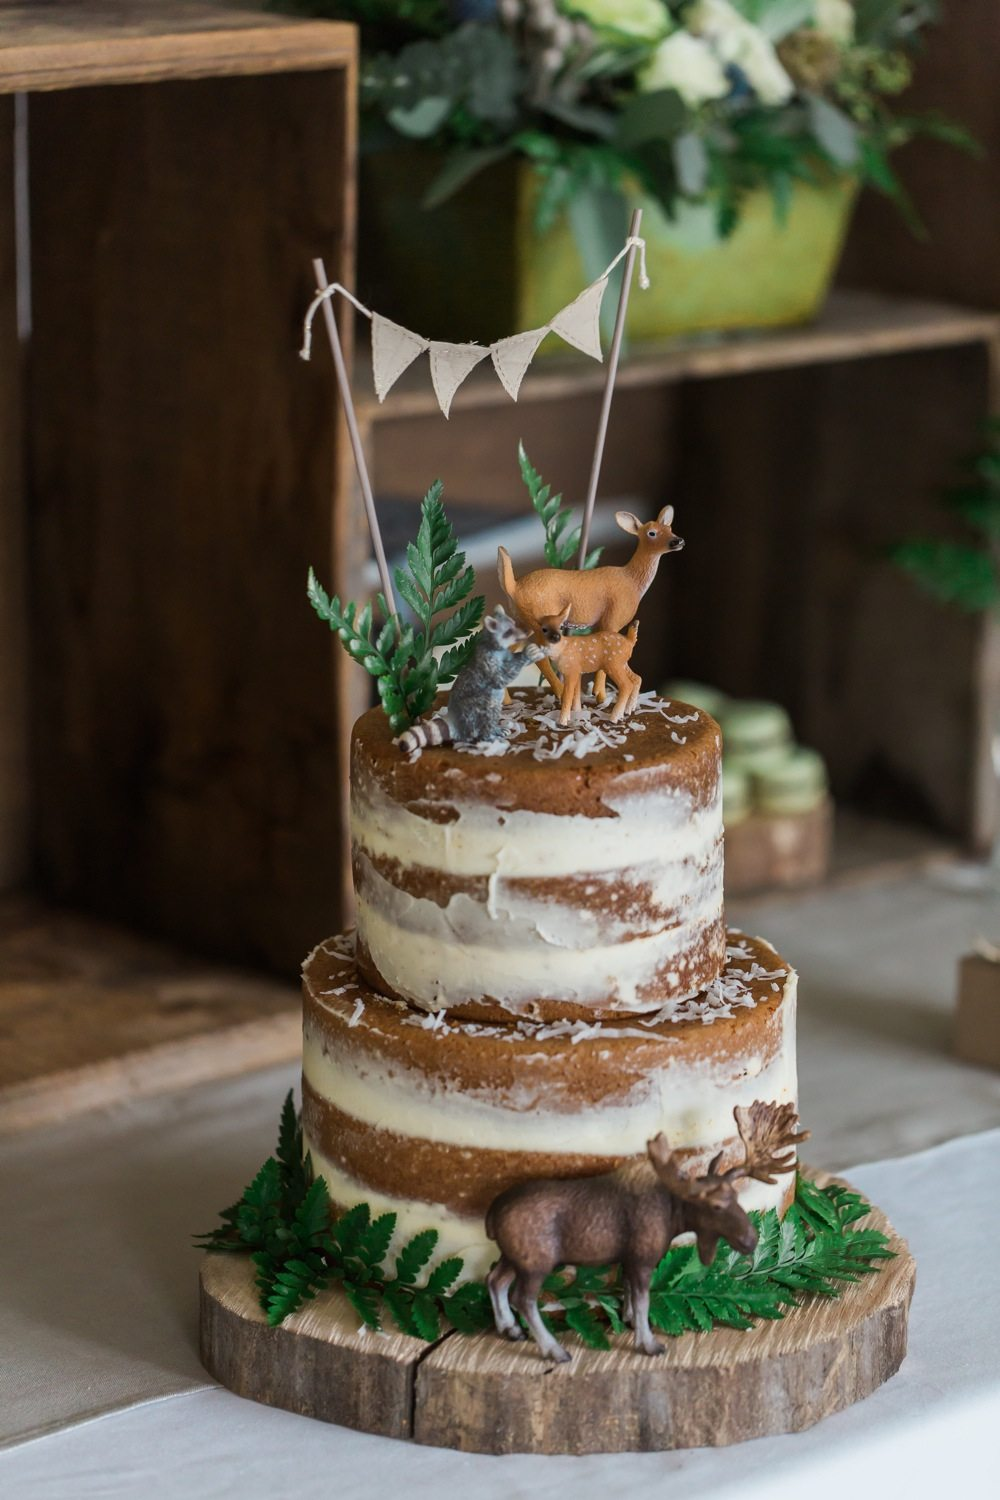 Exceptional A Whimsical Woodland Theme Baby Shower From @cydconverse